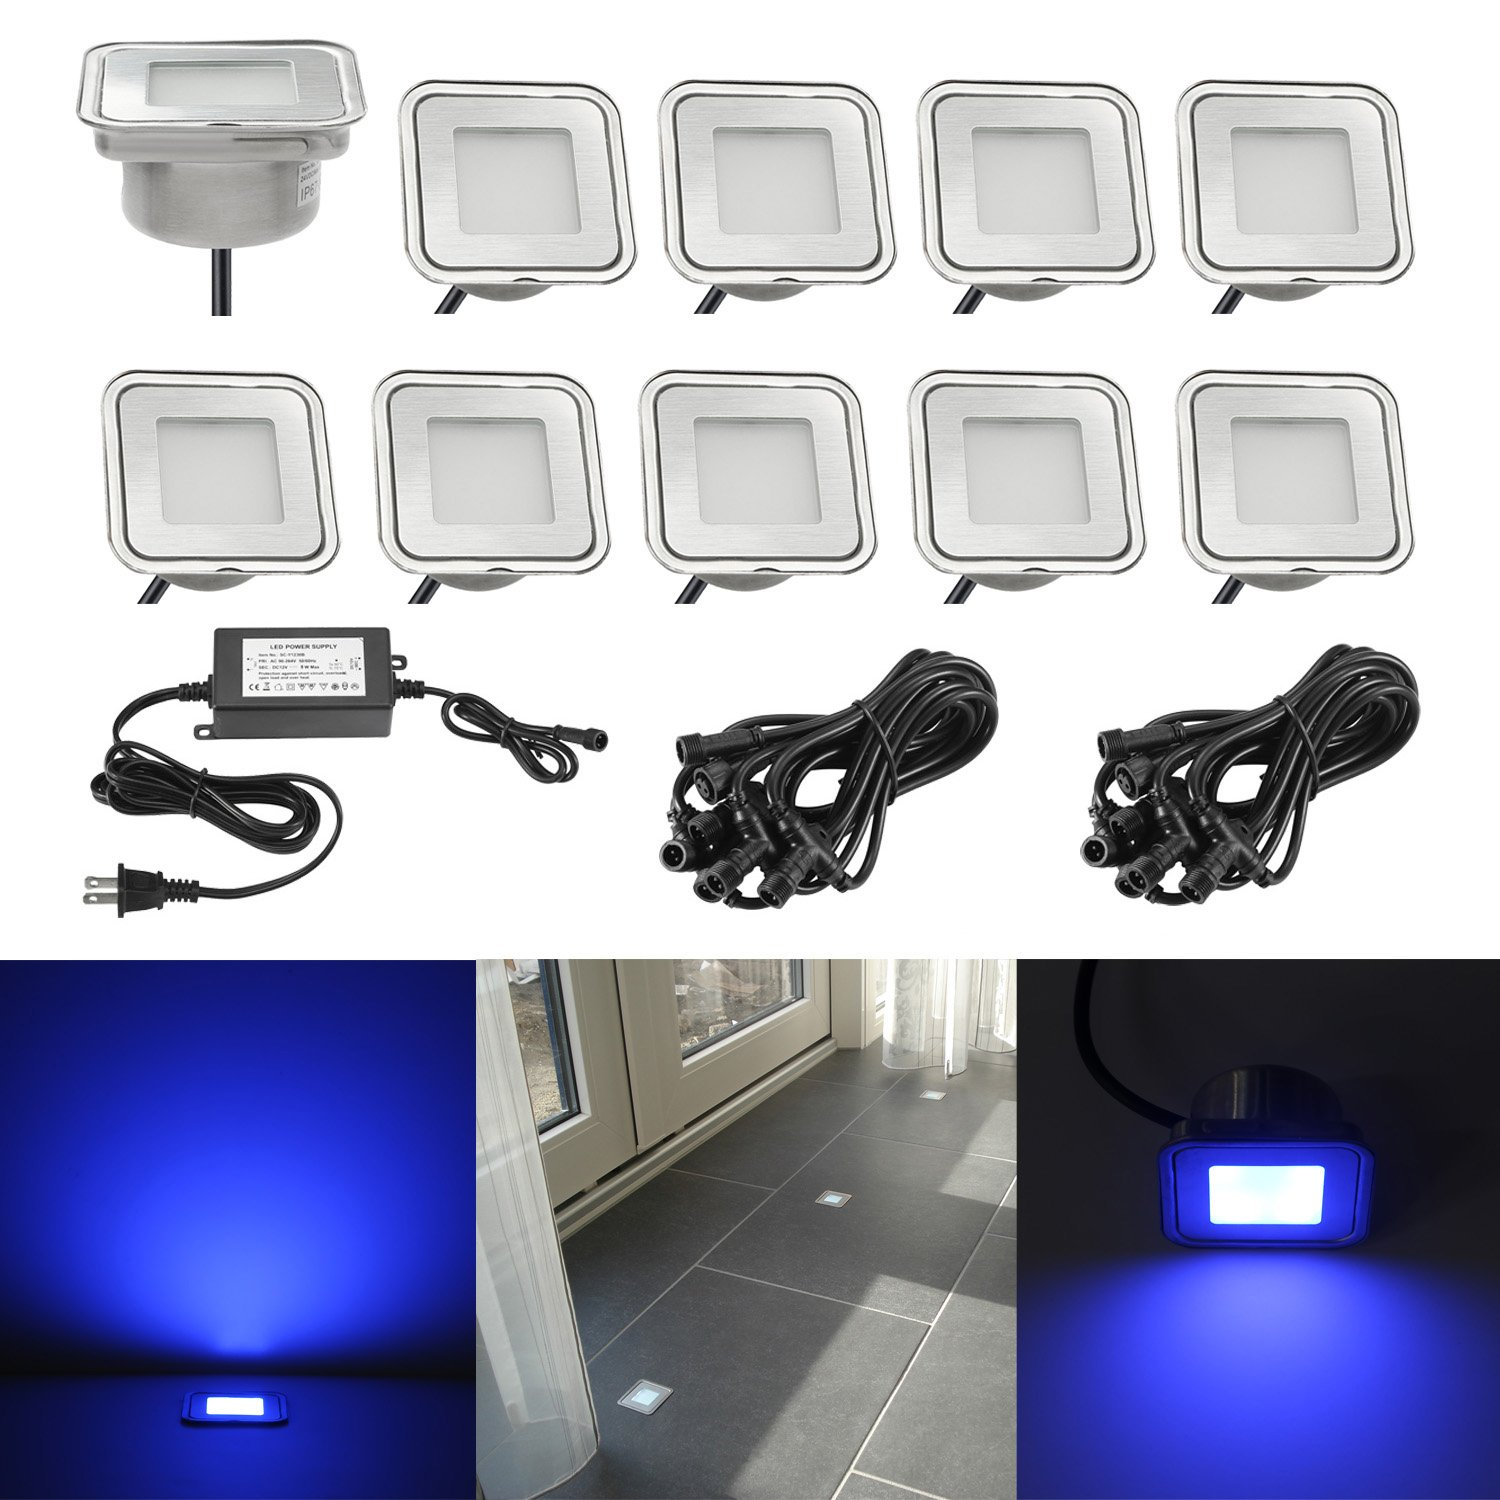 Low Voltage Stair Lights Outdoor, QACA DC 12V Deck Lighting Kits Waterproof IP67 In-Ground Lights for Steps Stair Patio Floor Pool Deck Kitchen Outdoor Led Landscape Lighting (10Pcs,Blue)